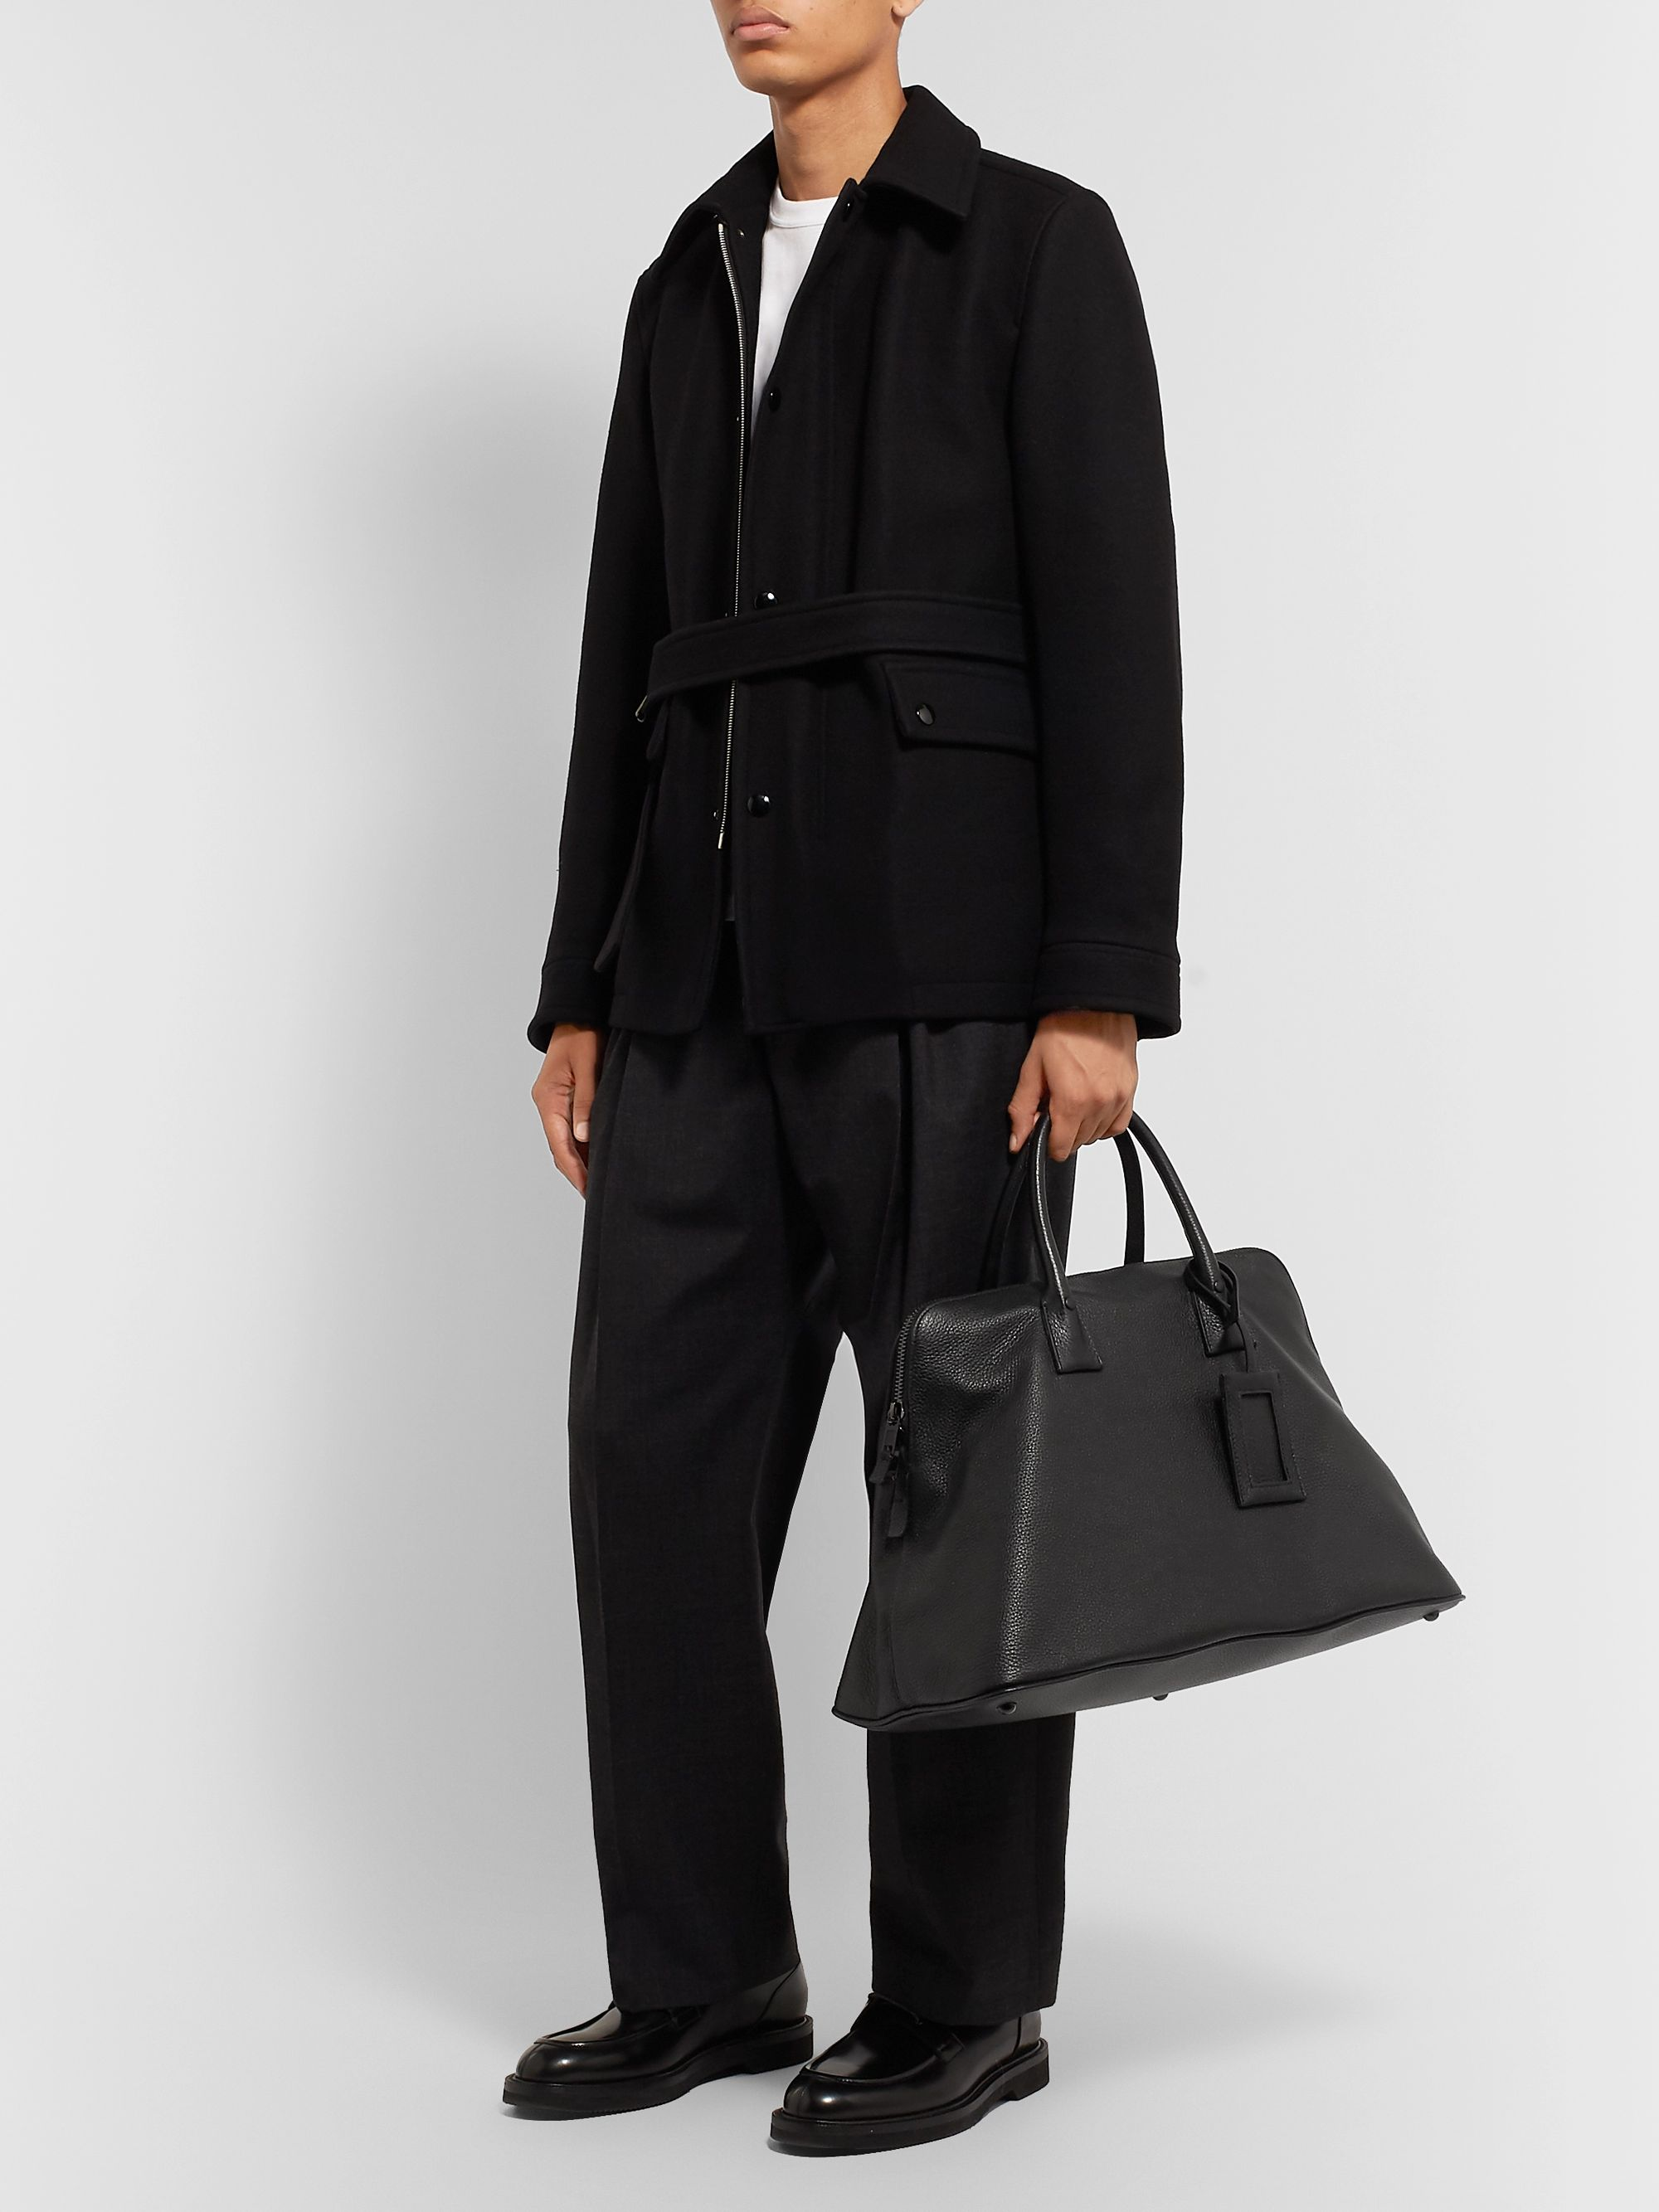 Maison Margiela Full-Grain Leather Tote Bag